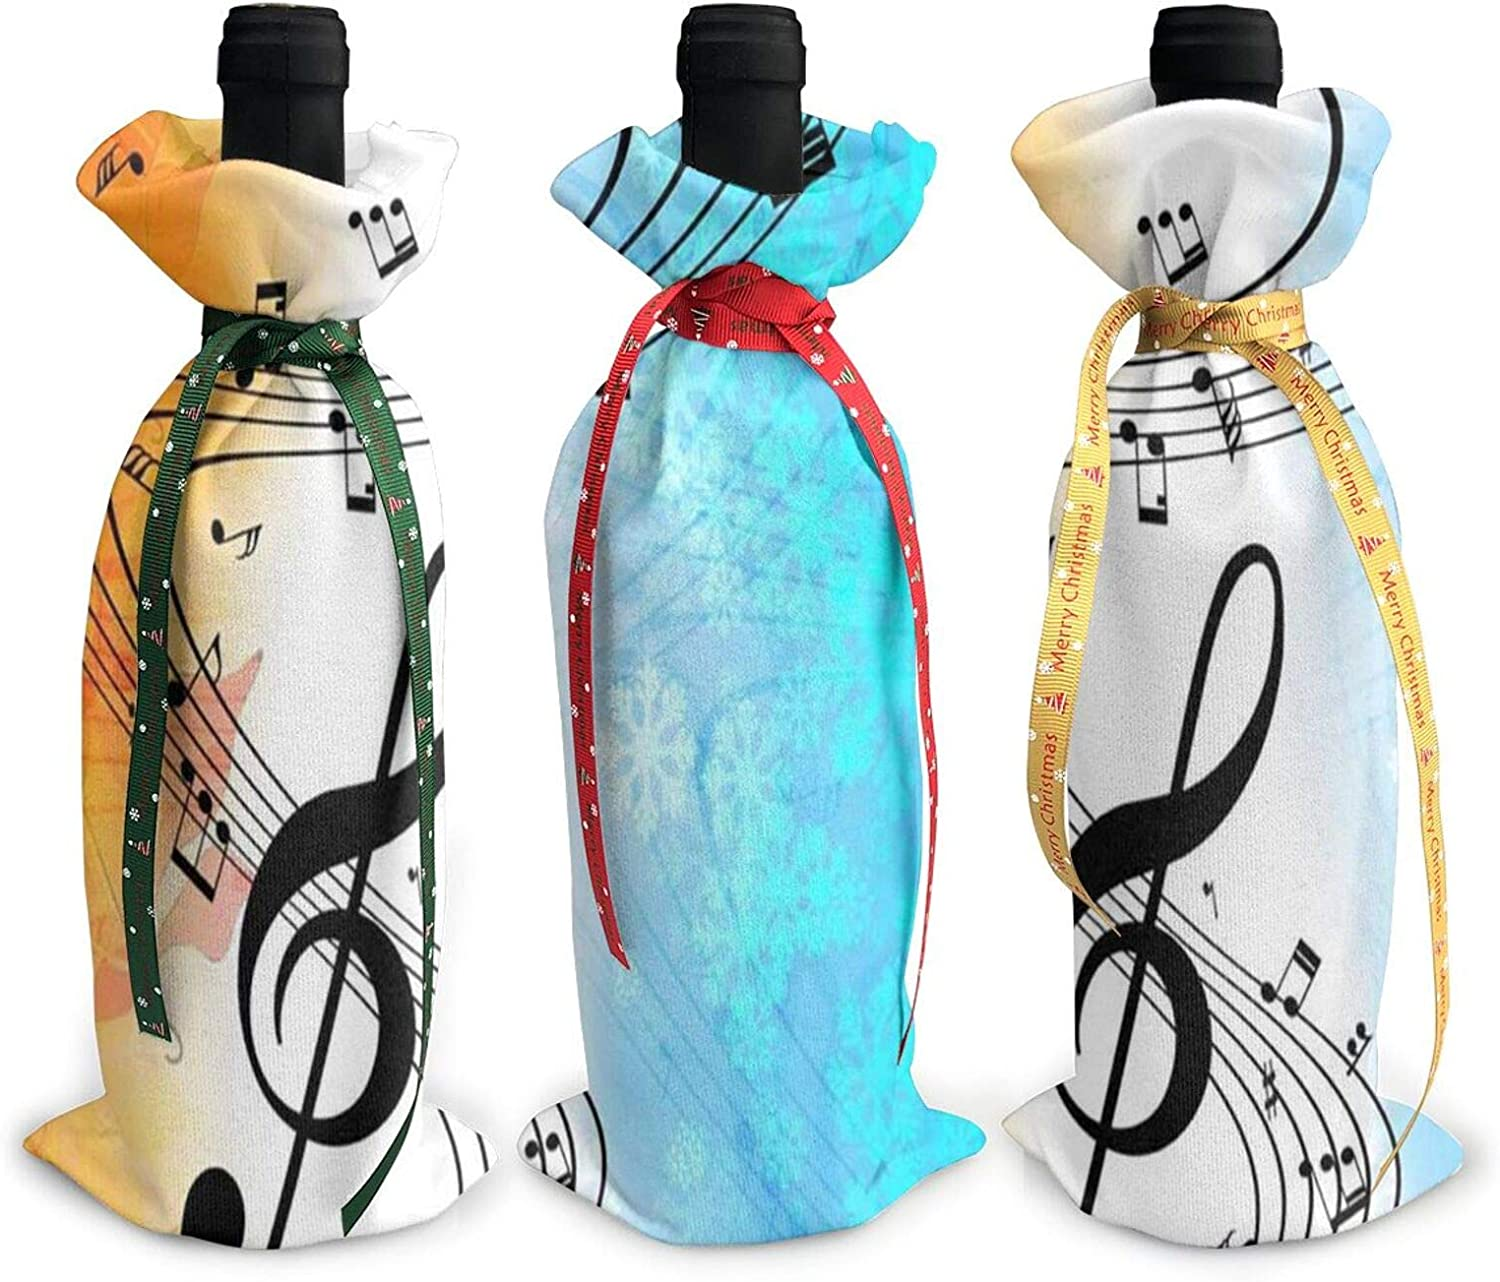 Christmas Wine Bottle Decoration Bag For New Year Wedding Wine Tasting Party Dinner Decor Holiday Ornaments 3pcs Wine Bottle Cover Bags,Xmas Gift Autumn Fall With Music Note Winter